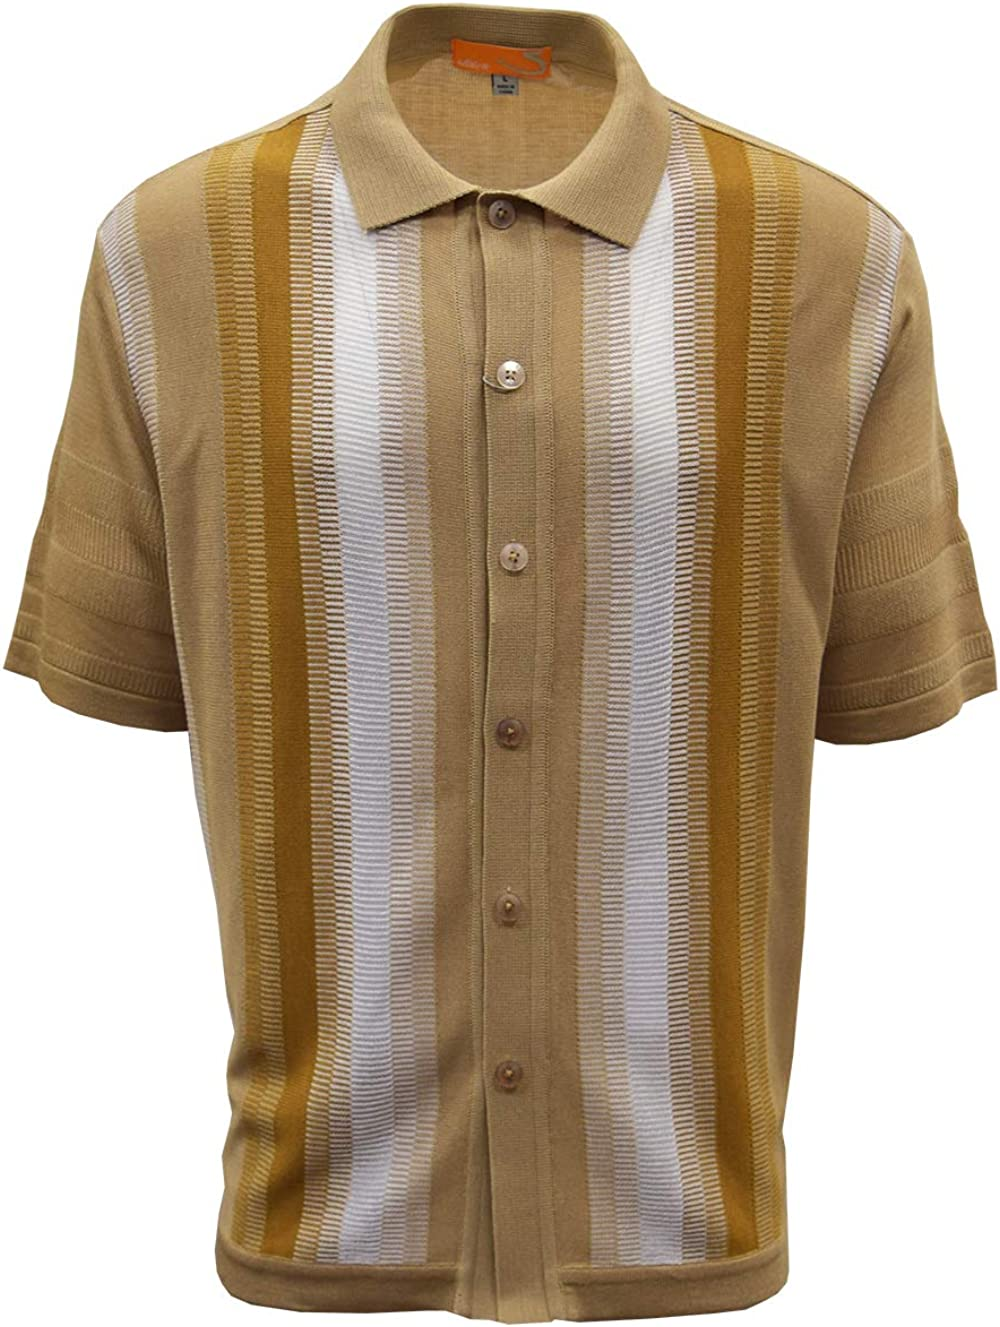 SAFIRE SILK INC. Edition-S Men's Short Sleeve Knit Shirt- California Rockabilly Style: Vertical Geometric Comb Panel